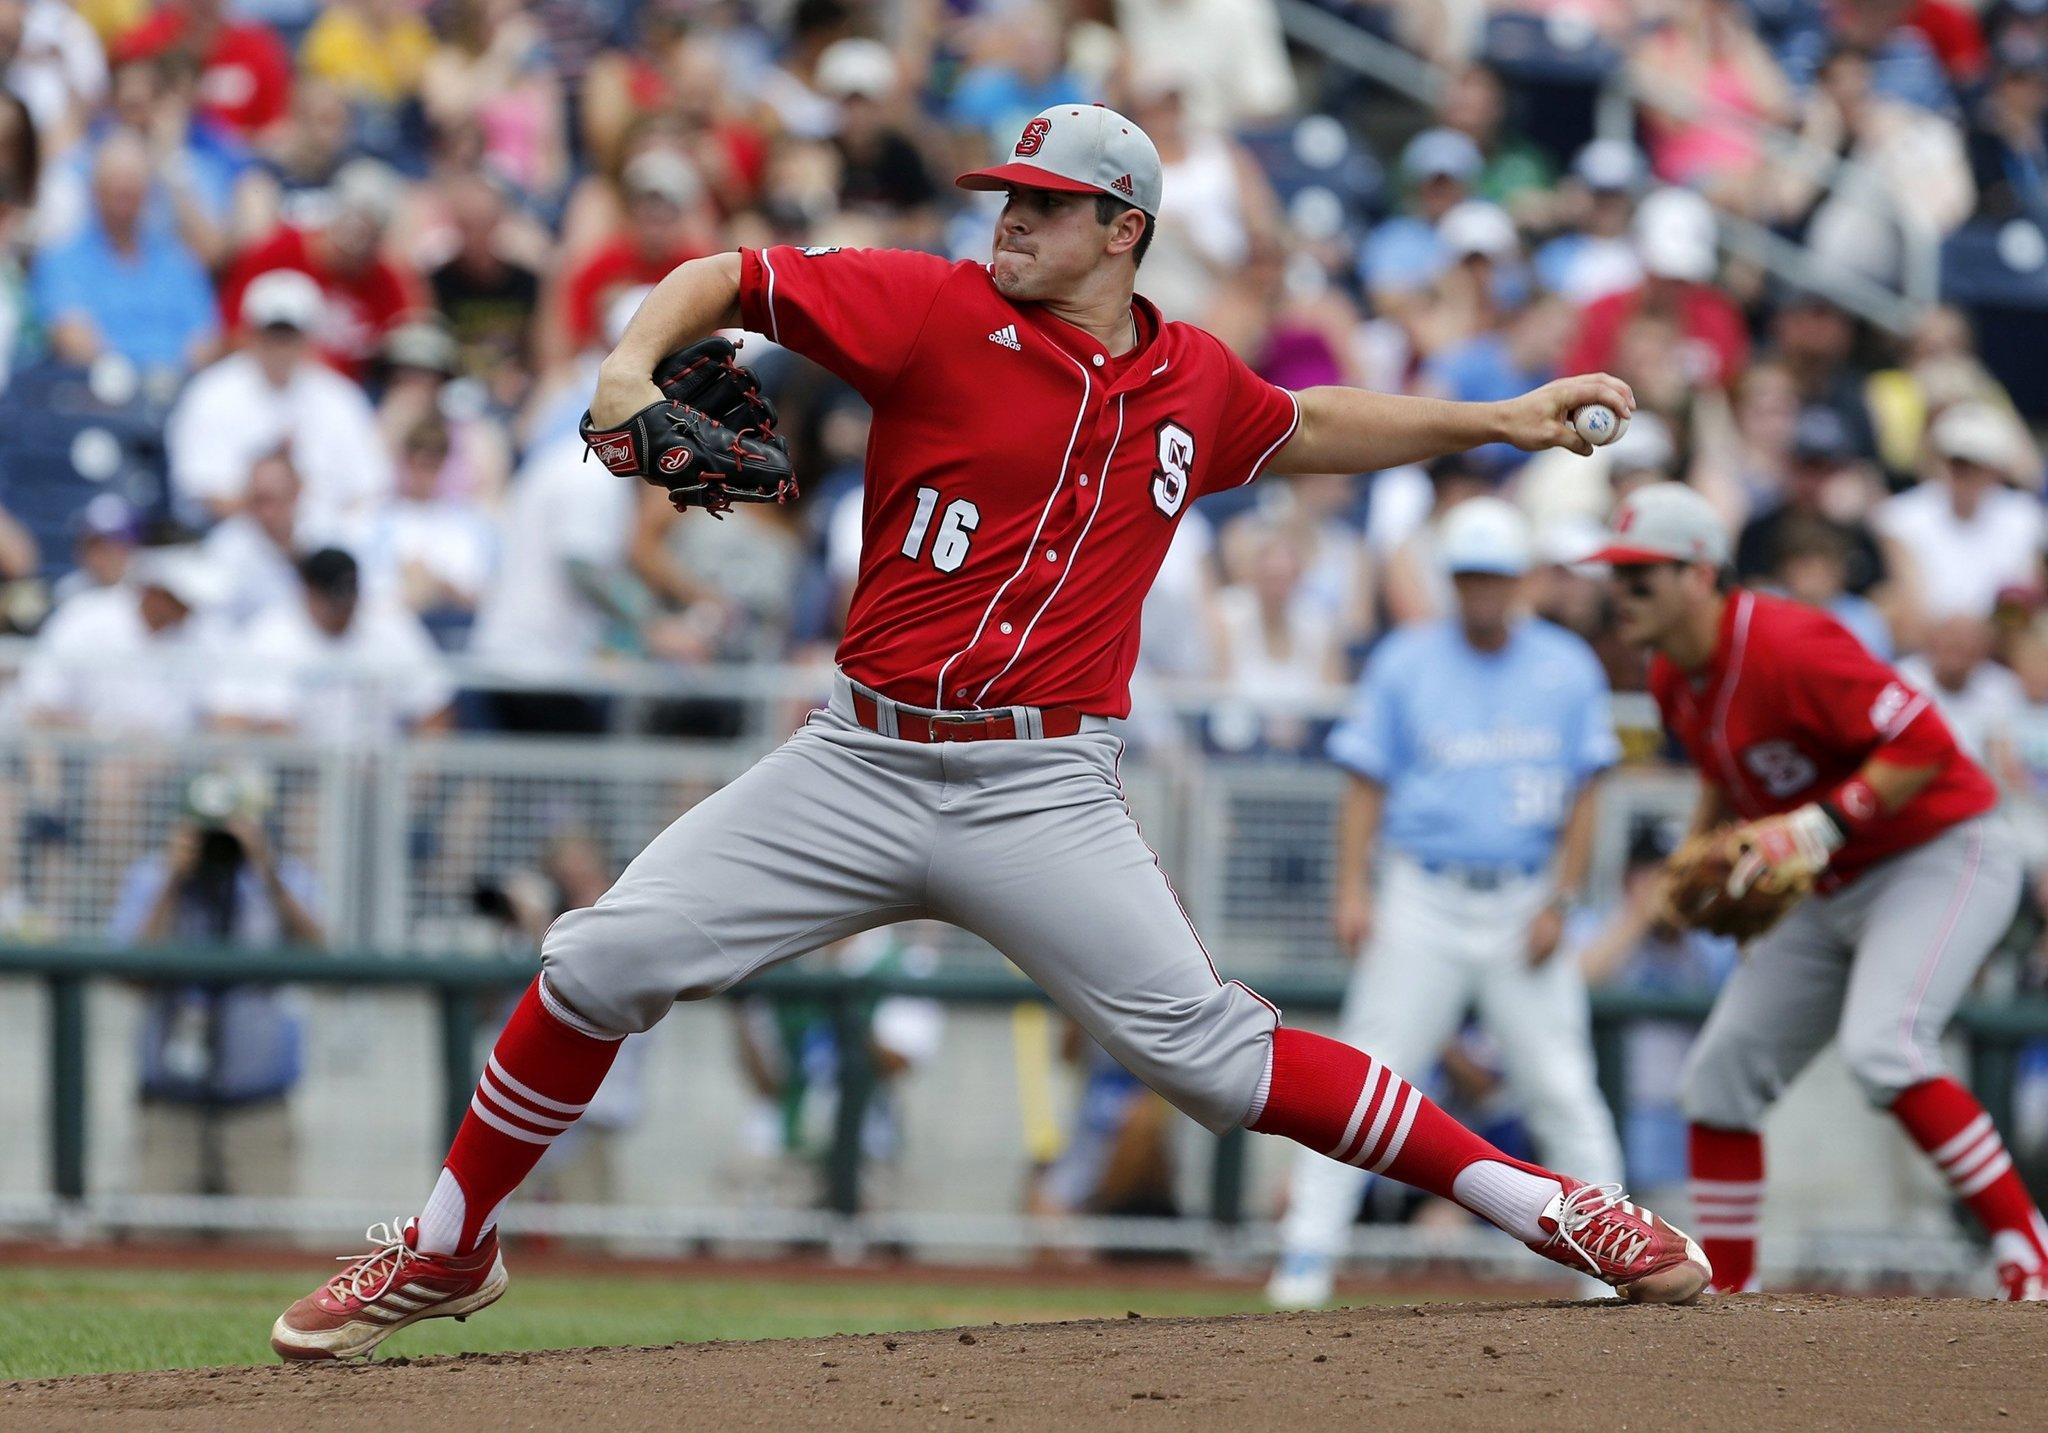 N.C. State's Carlos Rodon pitches against North Carolina in the College World Series in June.